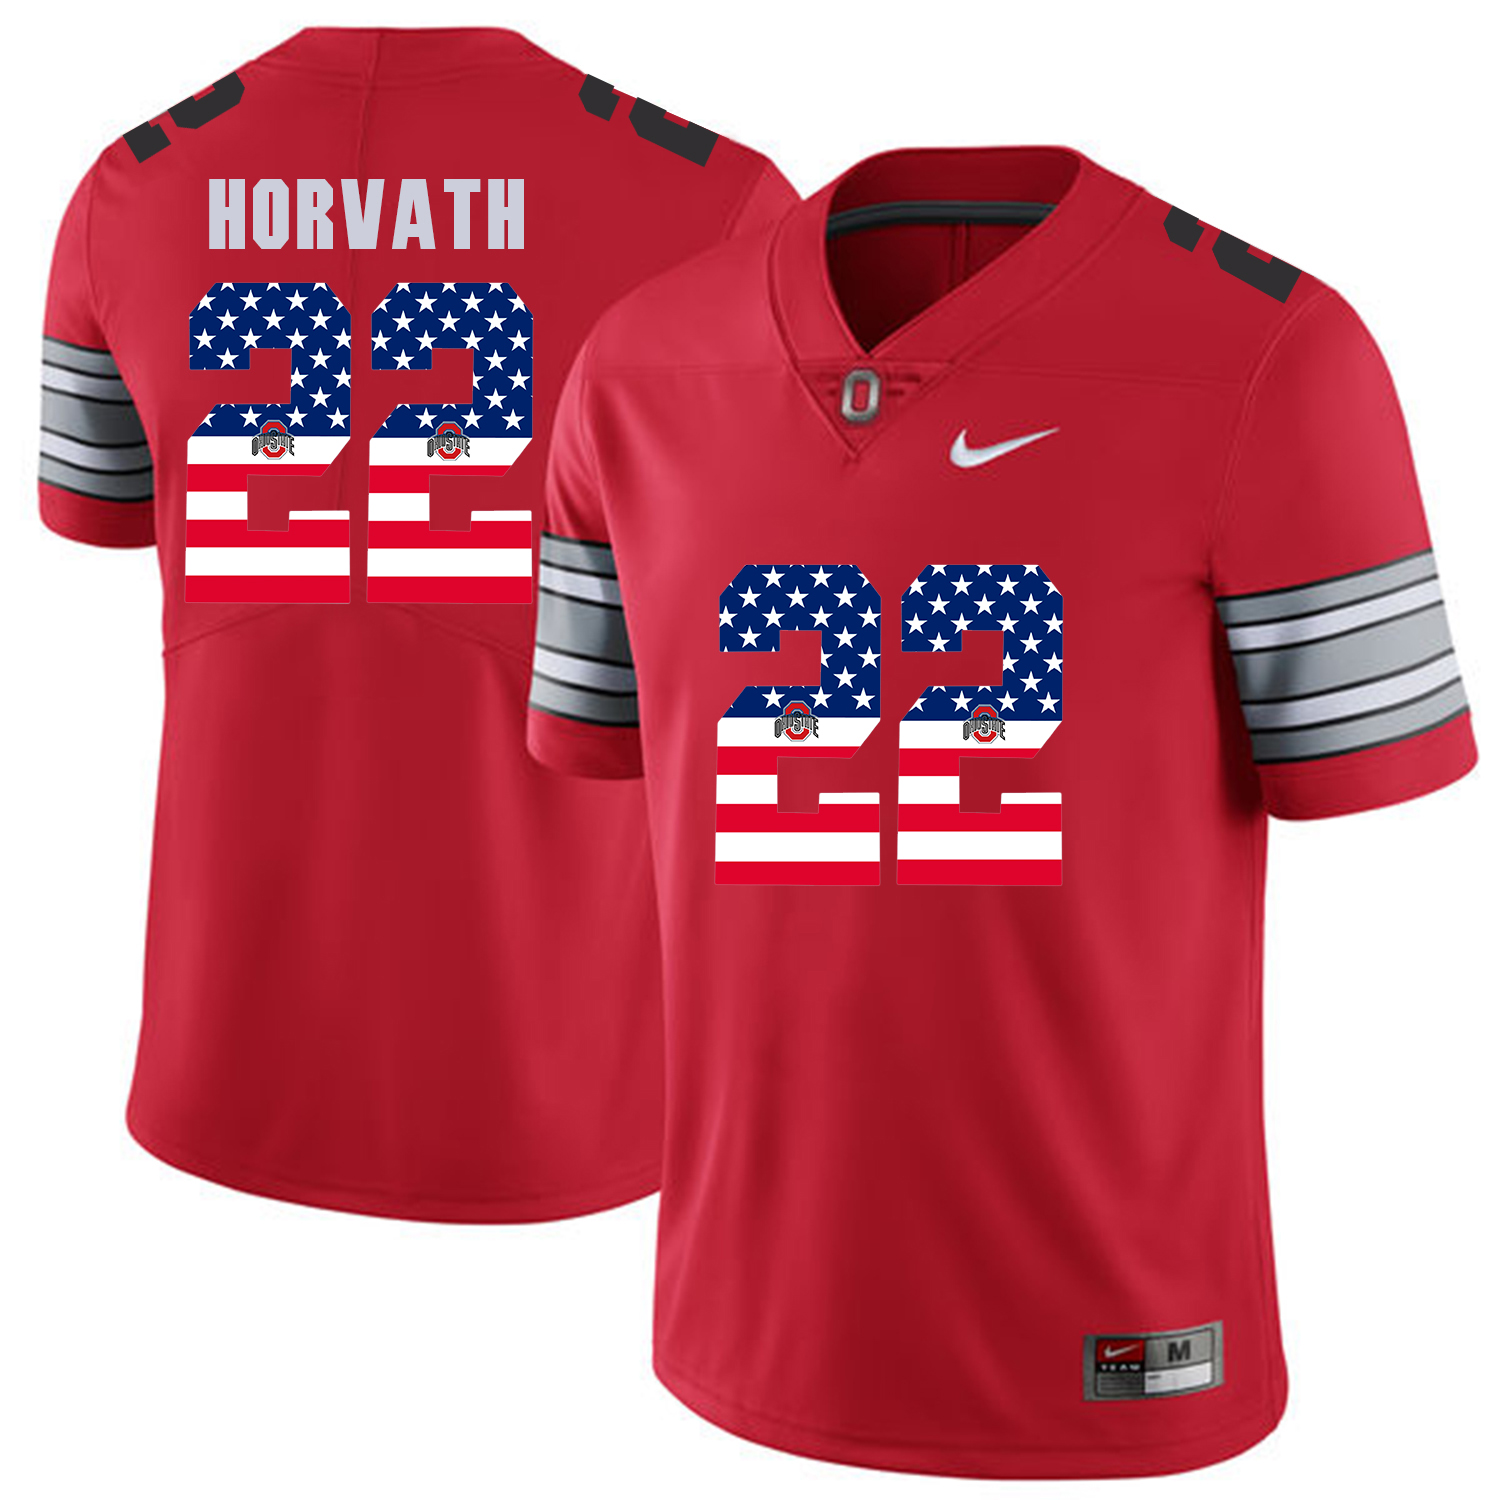 Men Ohio State 22 Horvath Red Flag Customized NCAA Jerseys